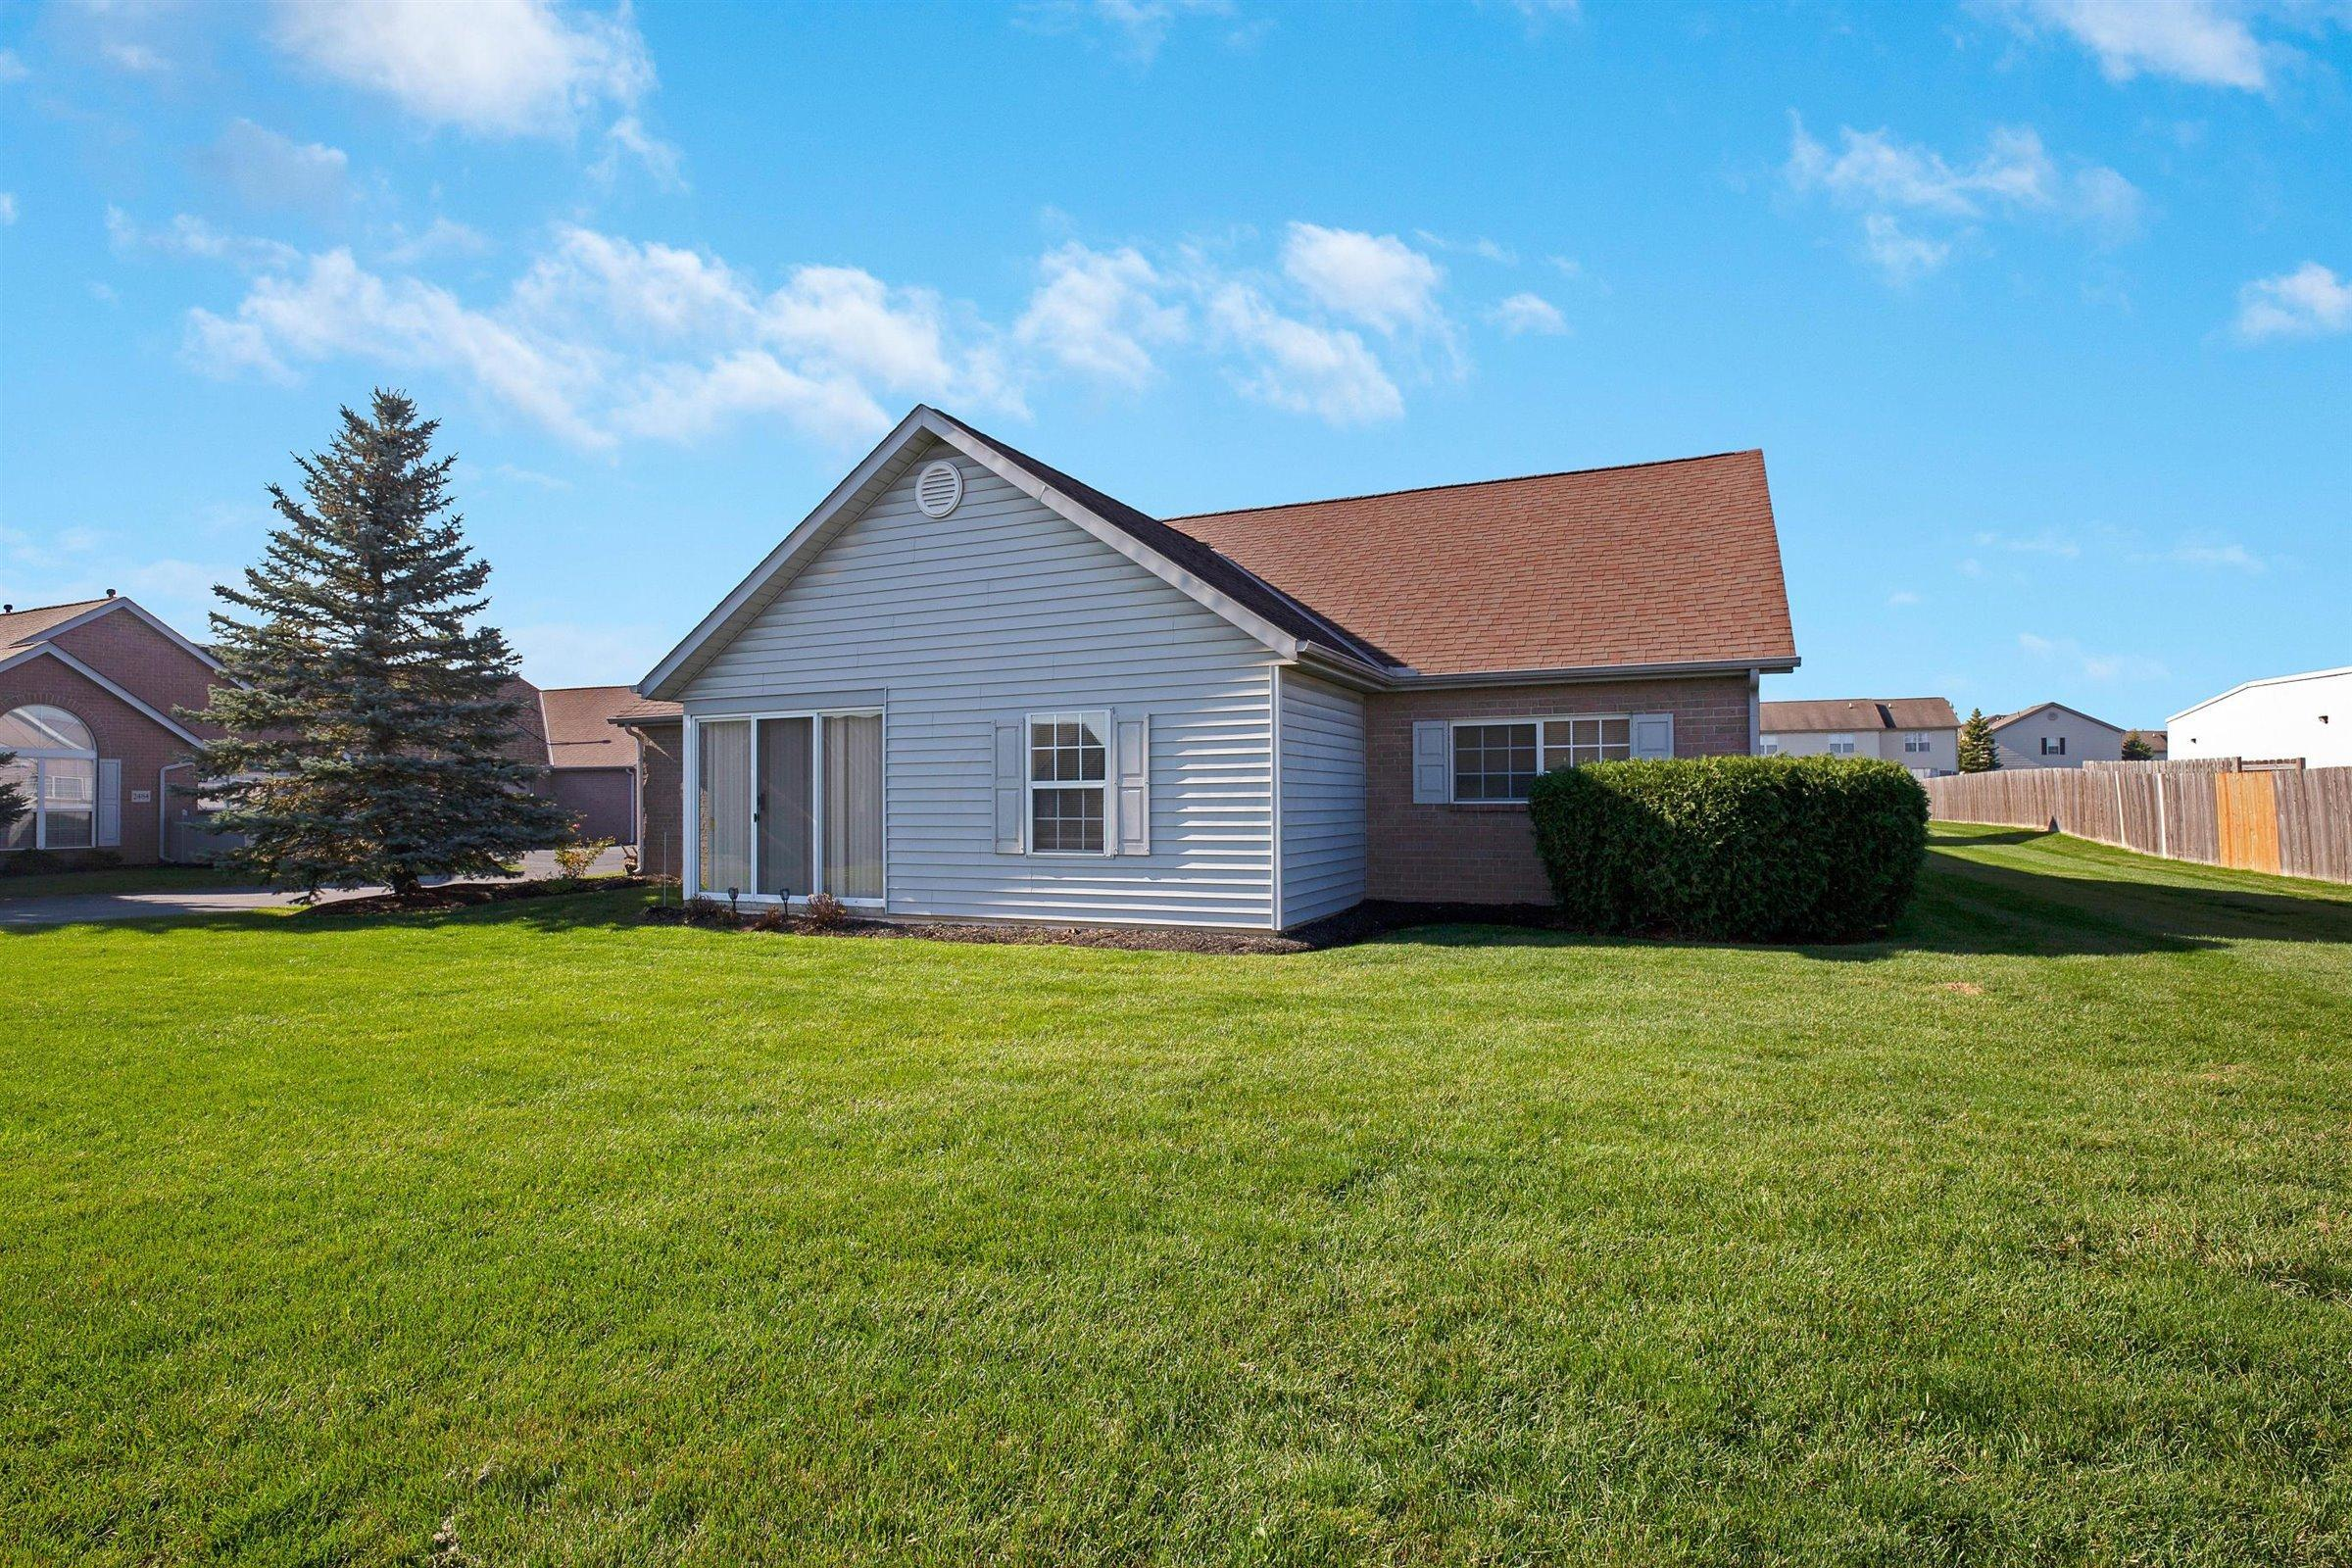 2499 Meadow Glade Drive, Hilliard, Ohio 43026, 3 Bedrooms Bedrooms, ,2 BathroomsBathrooms,Residential,For Sale,Meadow Glade,220040512